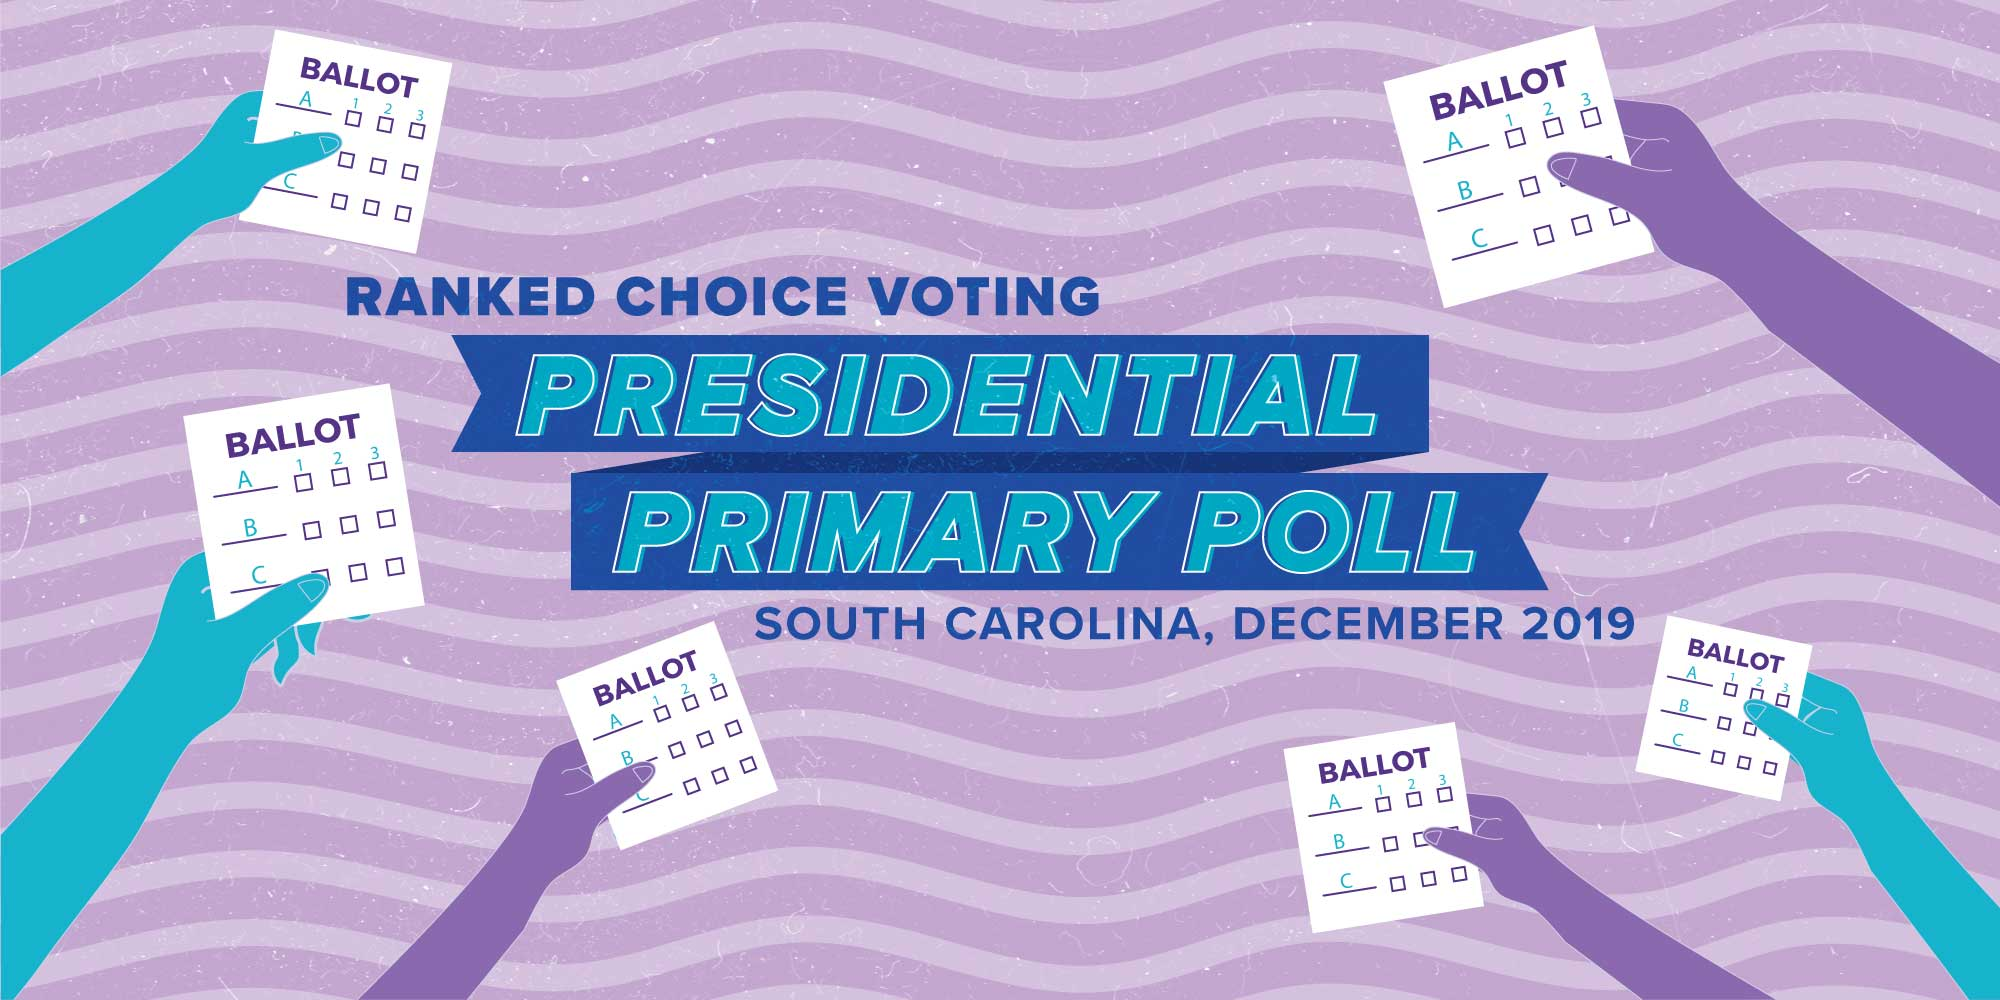 South Carolina Democratic Primary Poll 2020